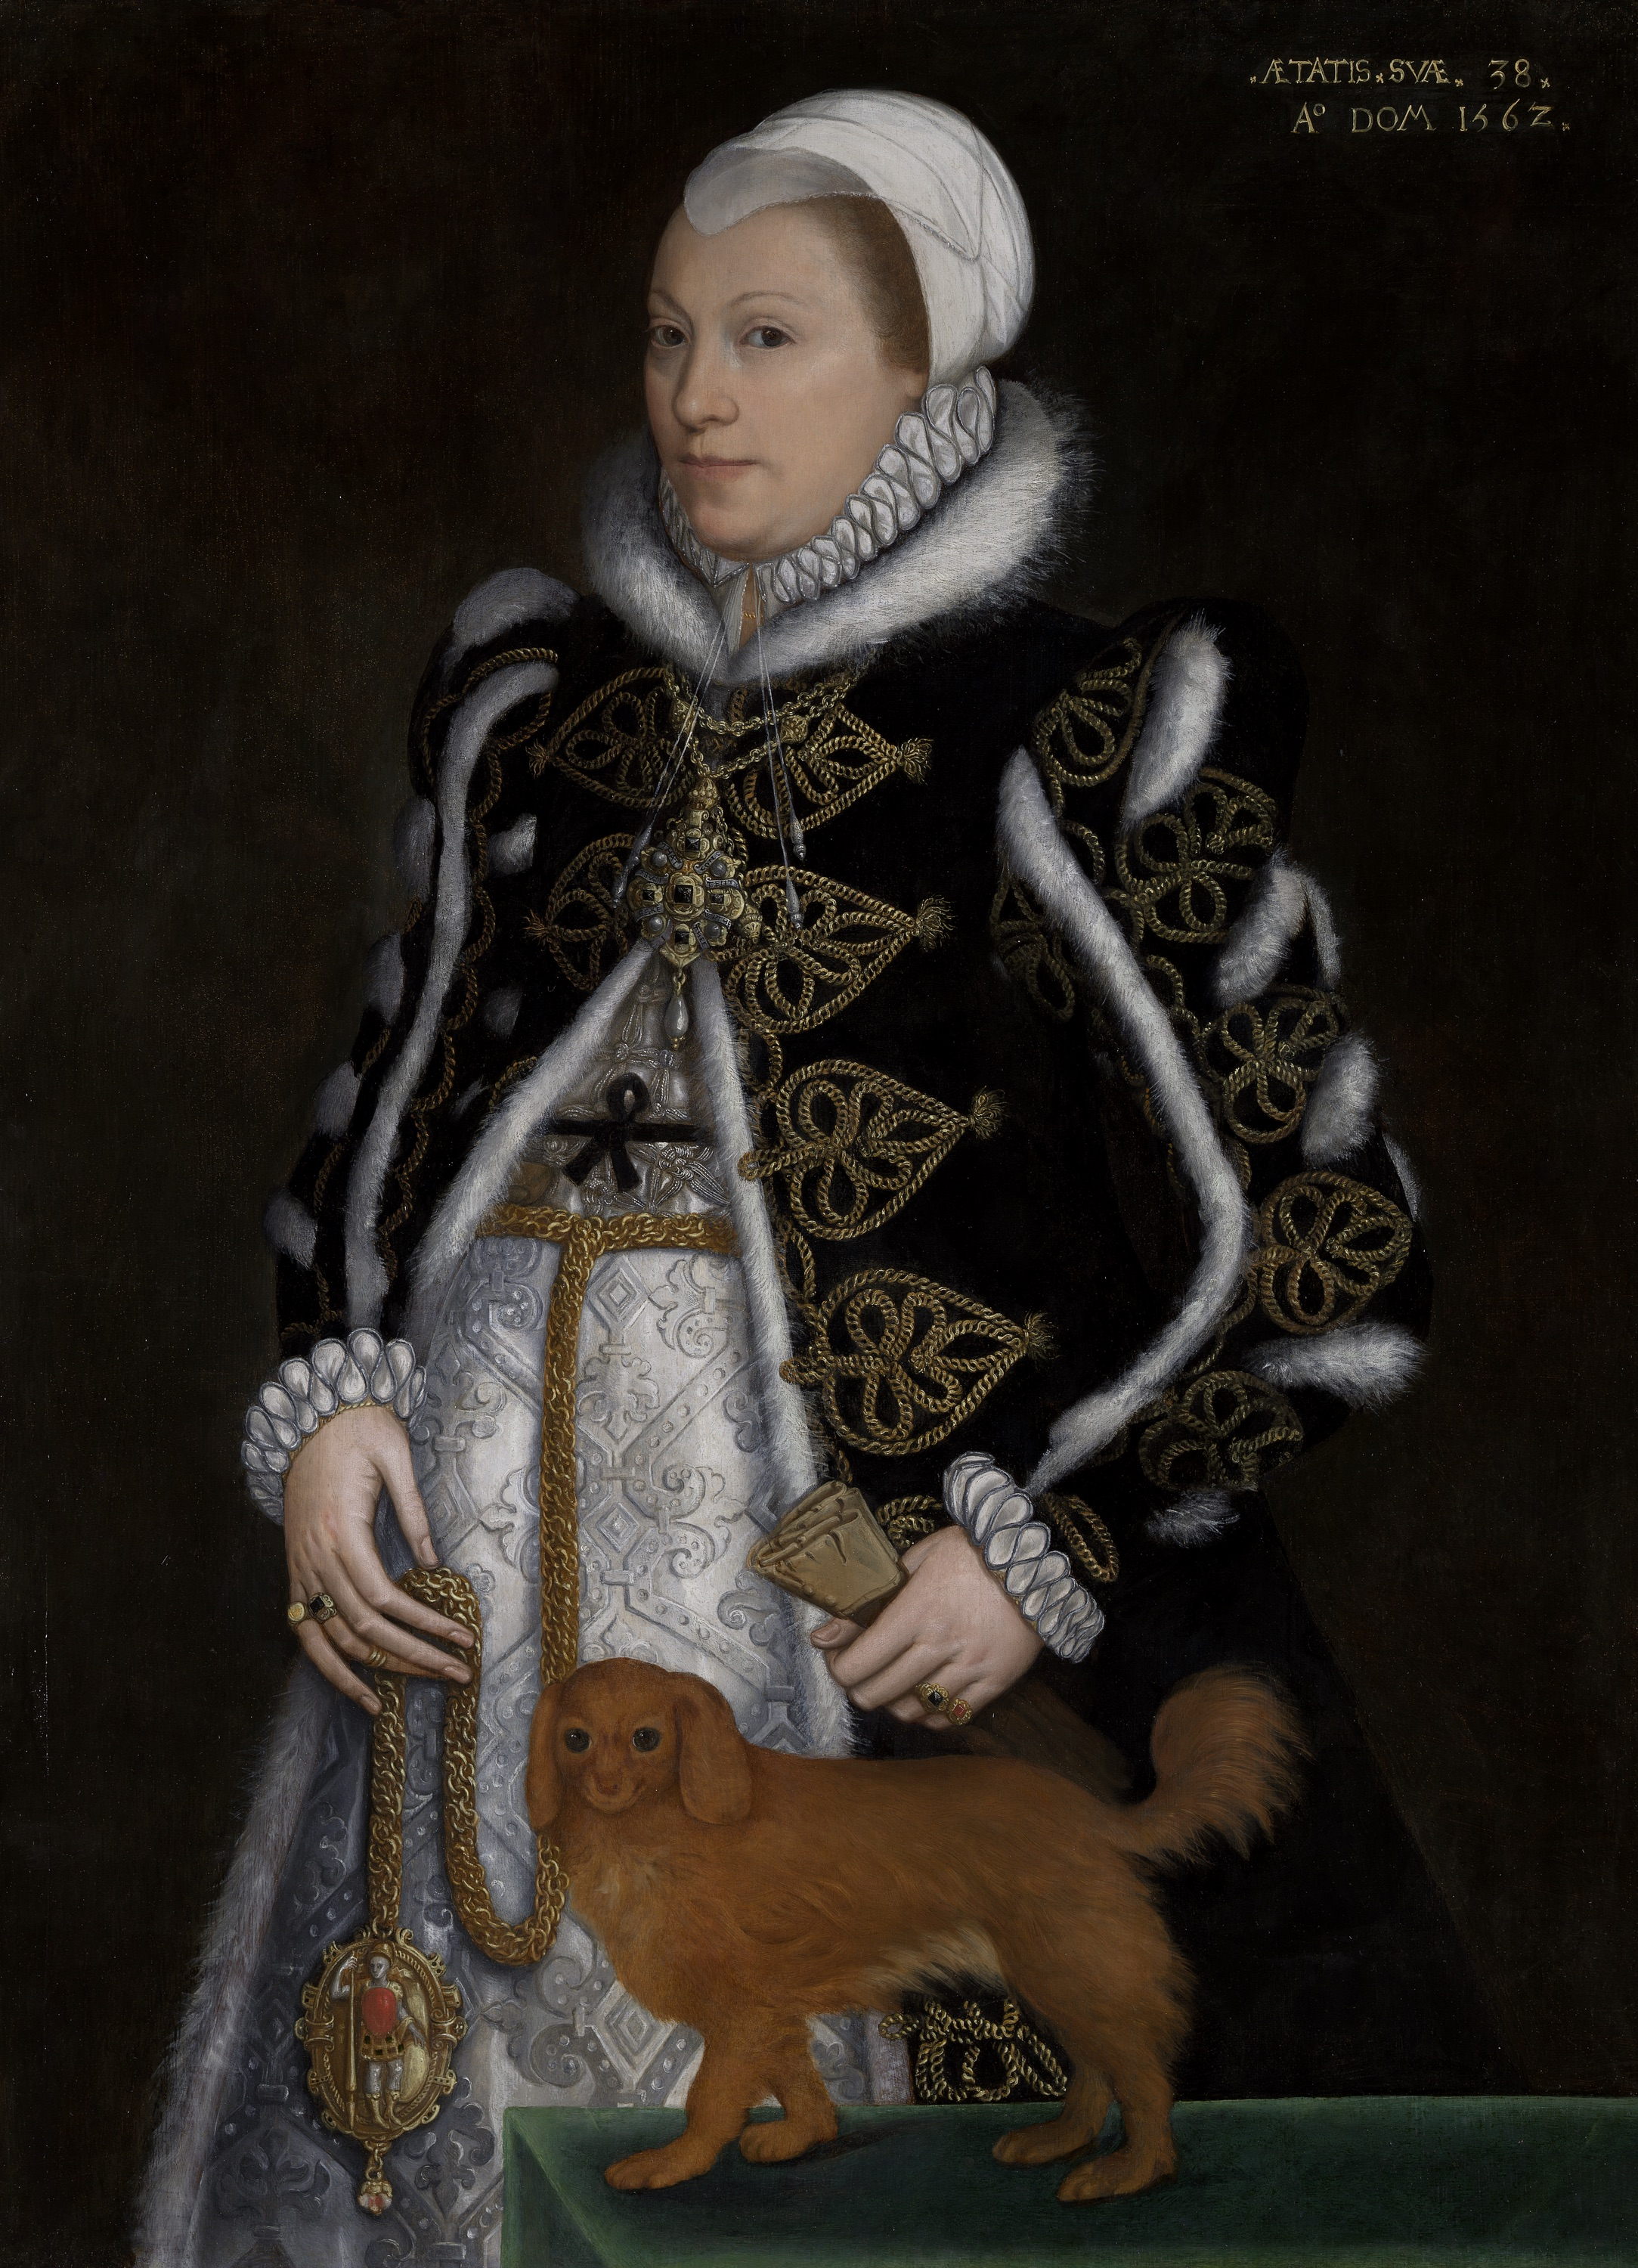 Portrait of a Woman, Probably Catherine Carey, Lady Knollys  attributed to Steven van der Meulen. Original held at the Yale Center for British Art.